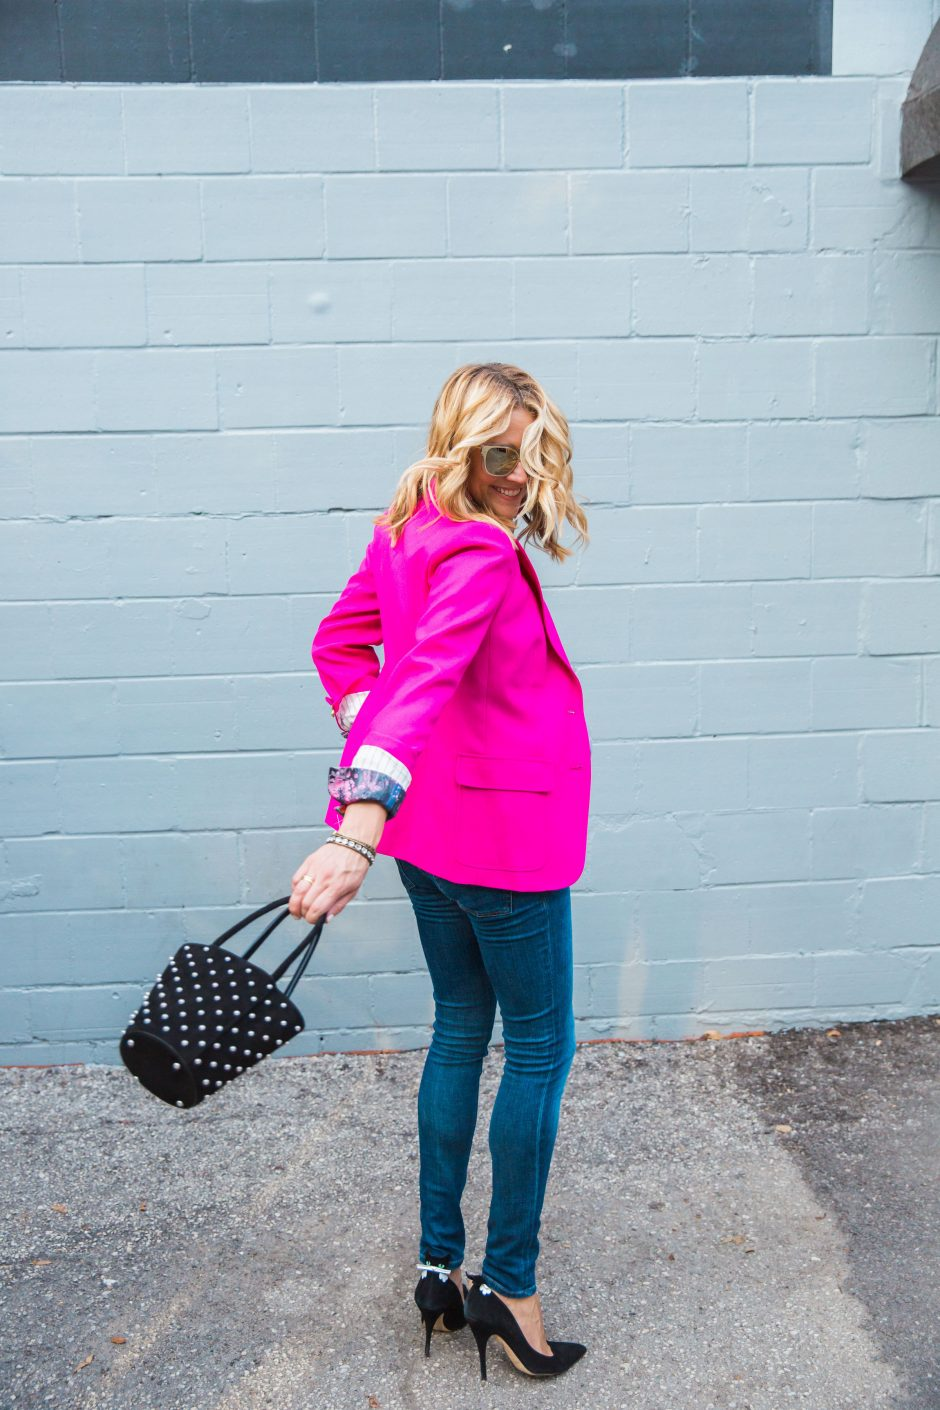 J. Crew google images ailee_petrovic_160922_l86a5024